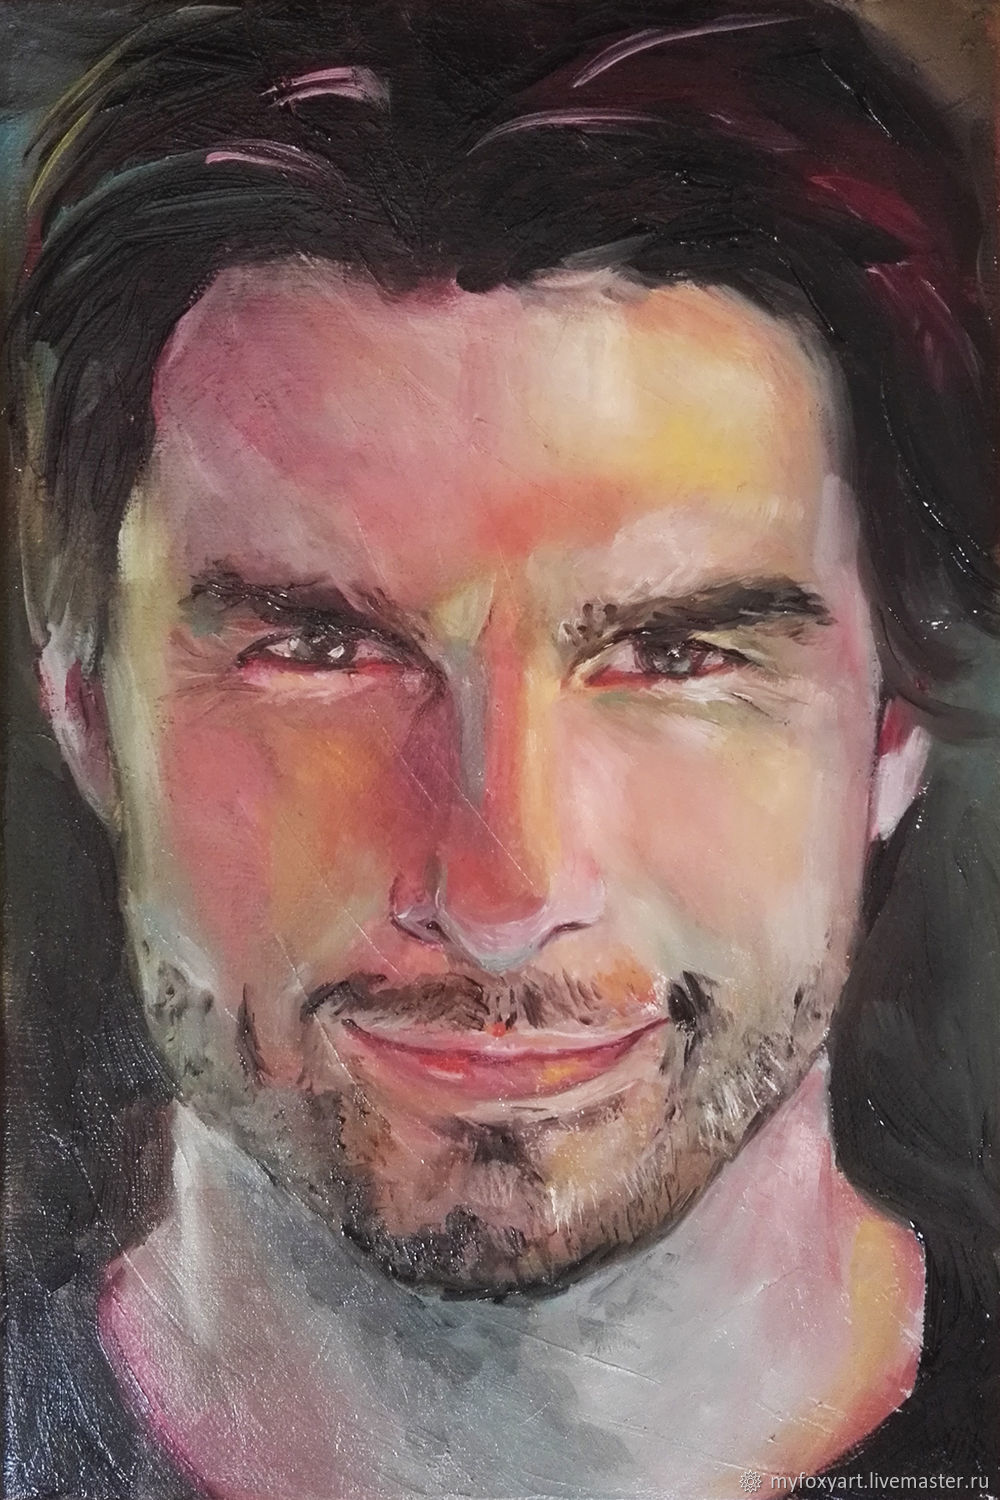 Tom cruise, oil portrait on canvas photo, Pictures, St. Petersburg,  Фото №1